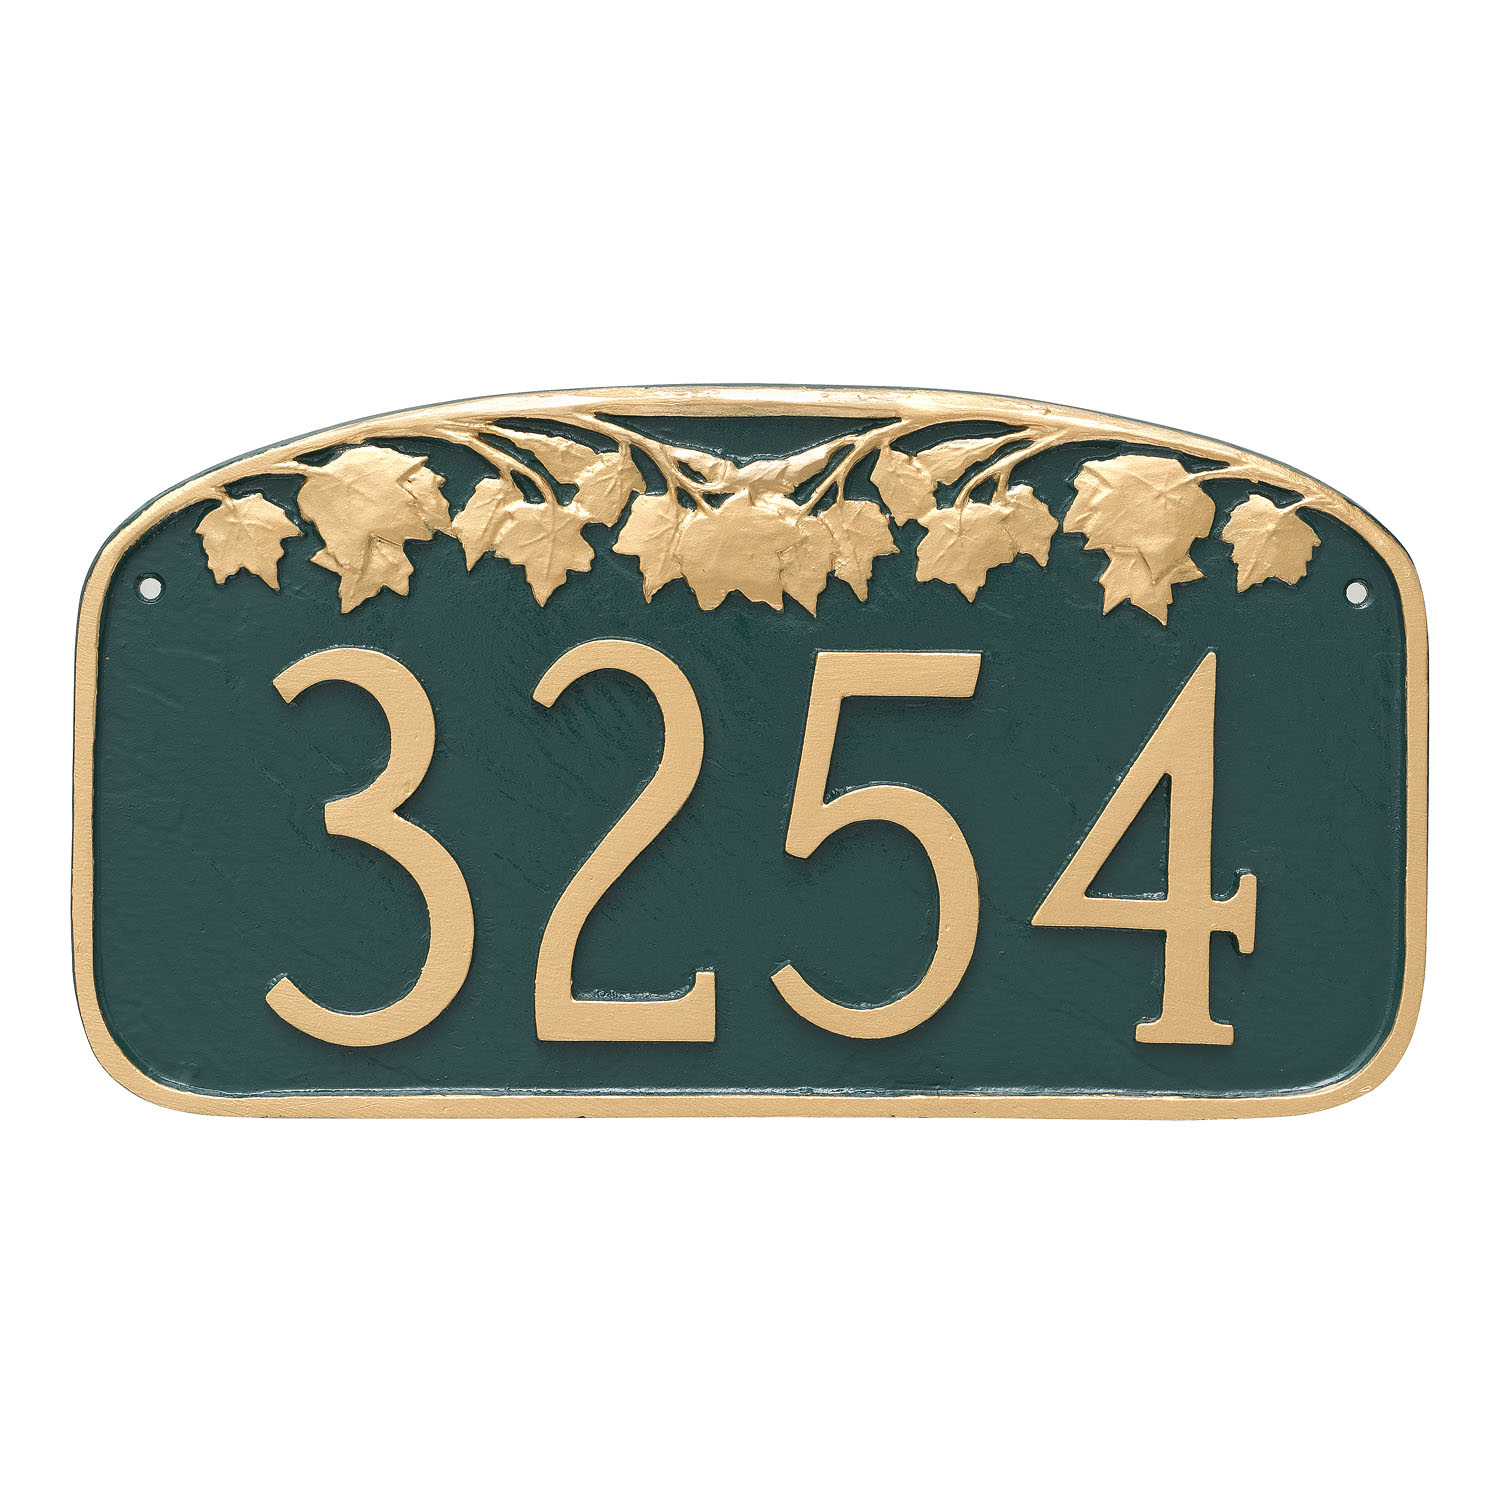 Maple Leaf Garland Address Plaque